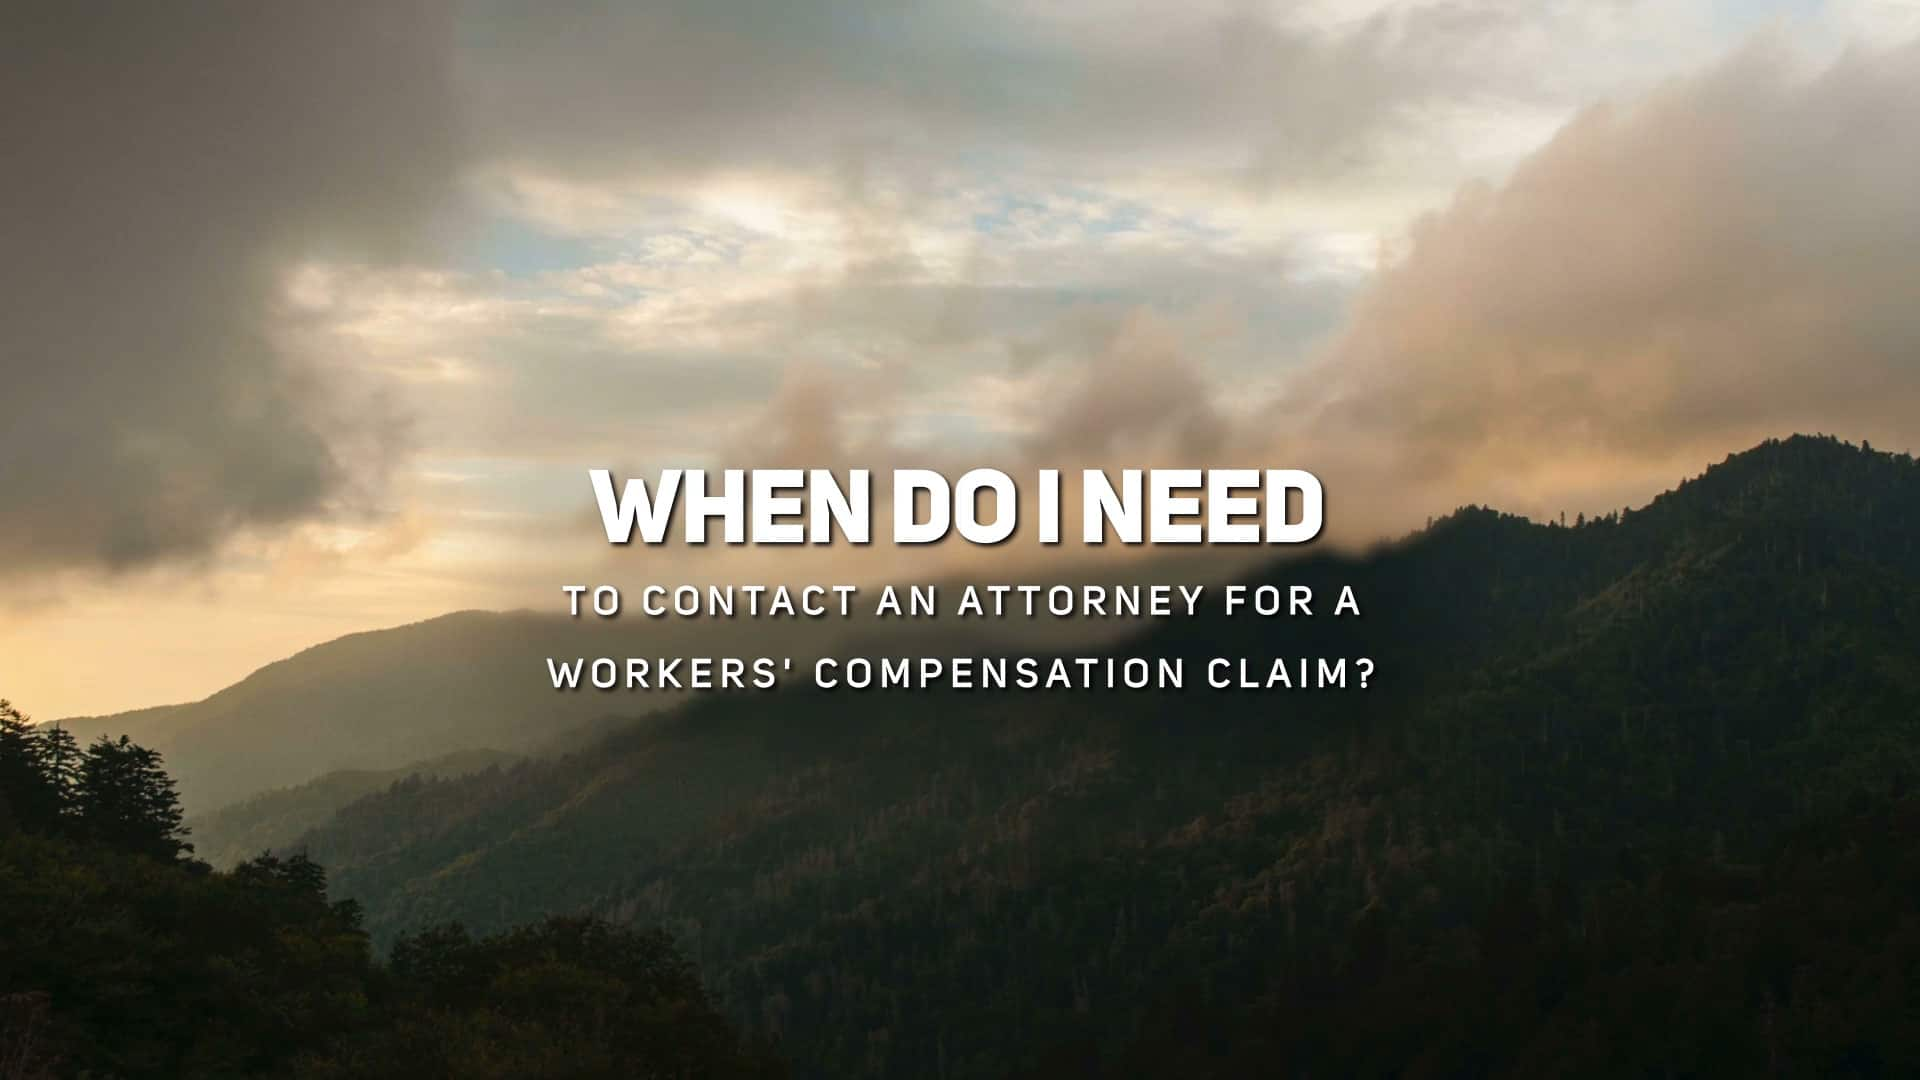 When Do I Need to Contact an Attorney for a Workers Compensation Claim